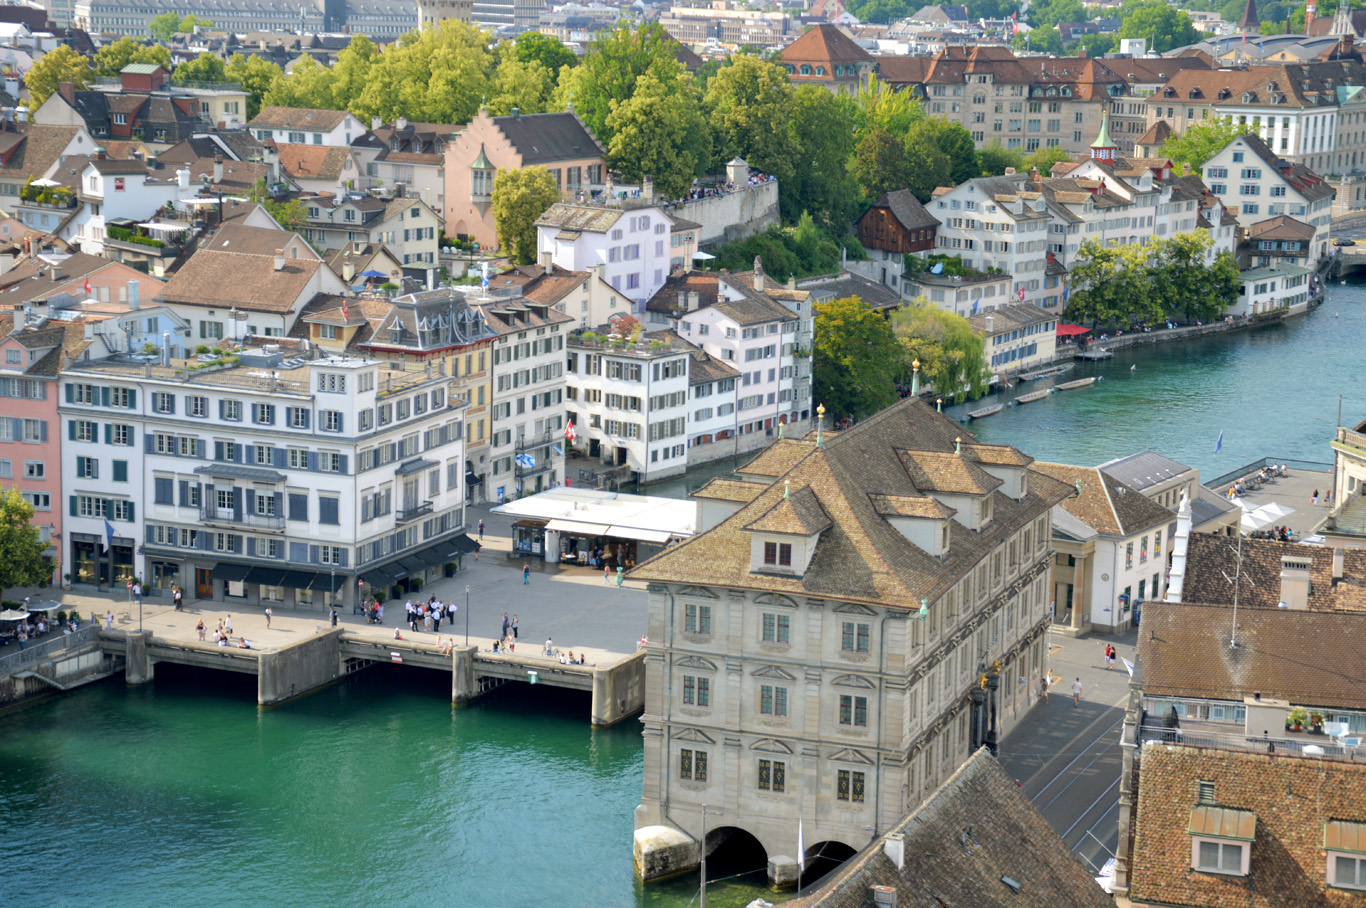 Zurich Old Town seen from the tower